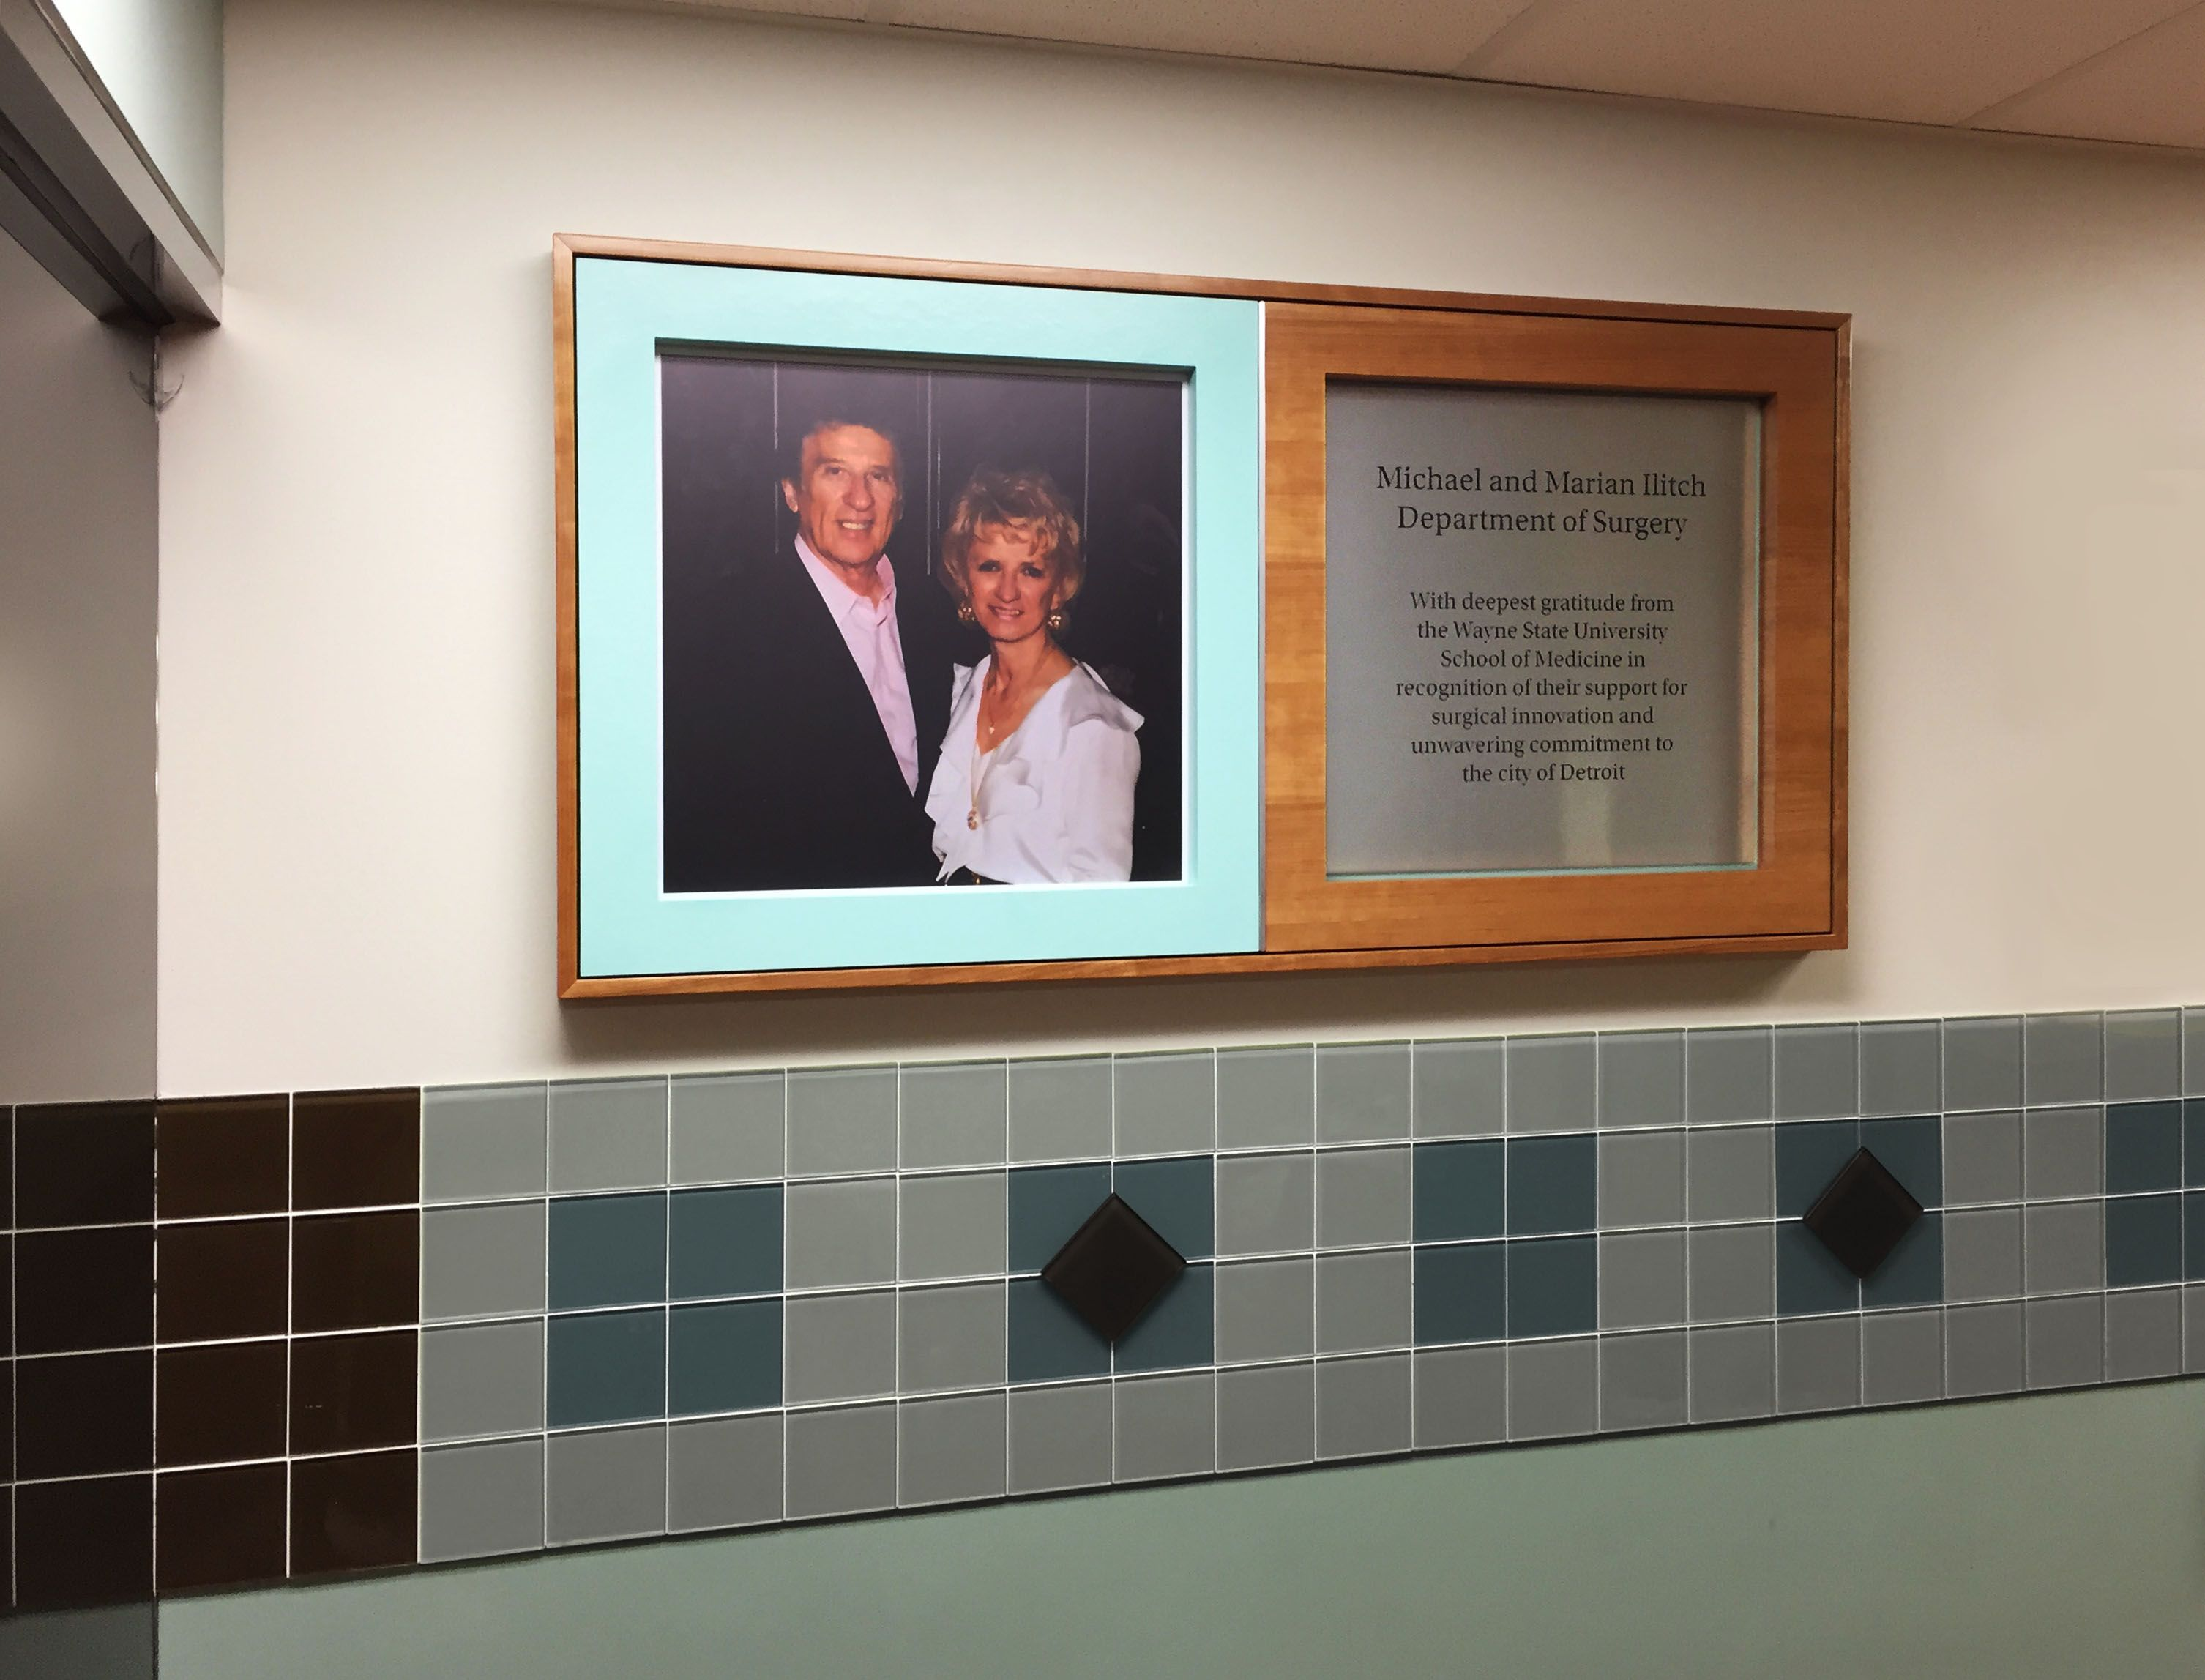 Wayne state university this plaques recognizes michael ilitch sr for contributing to a